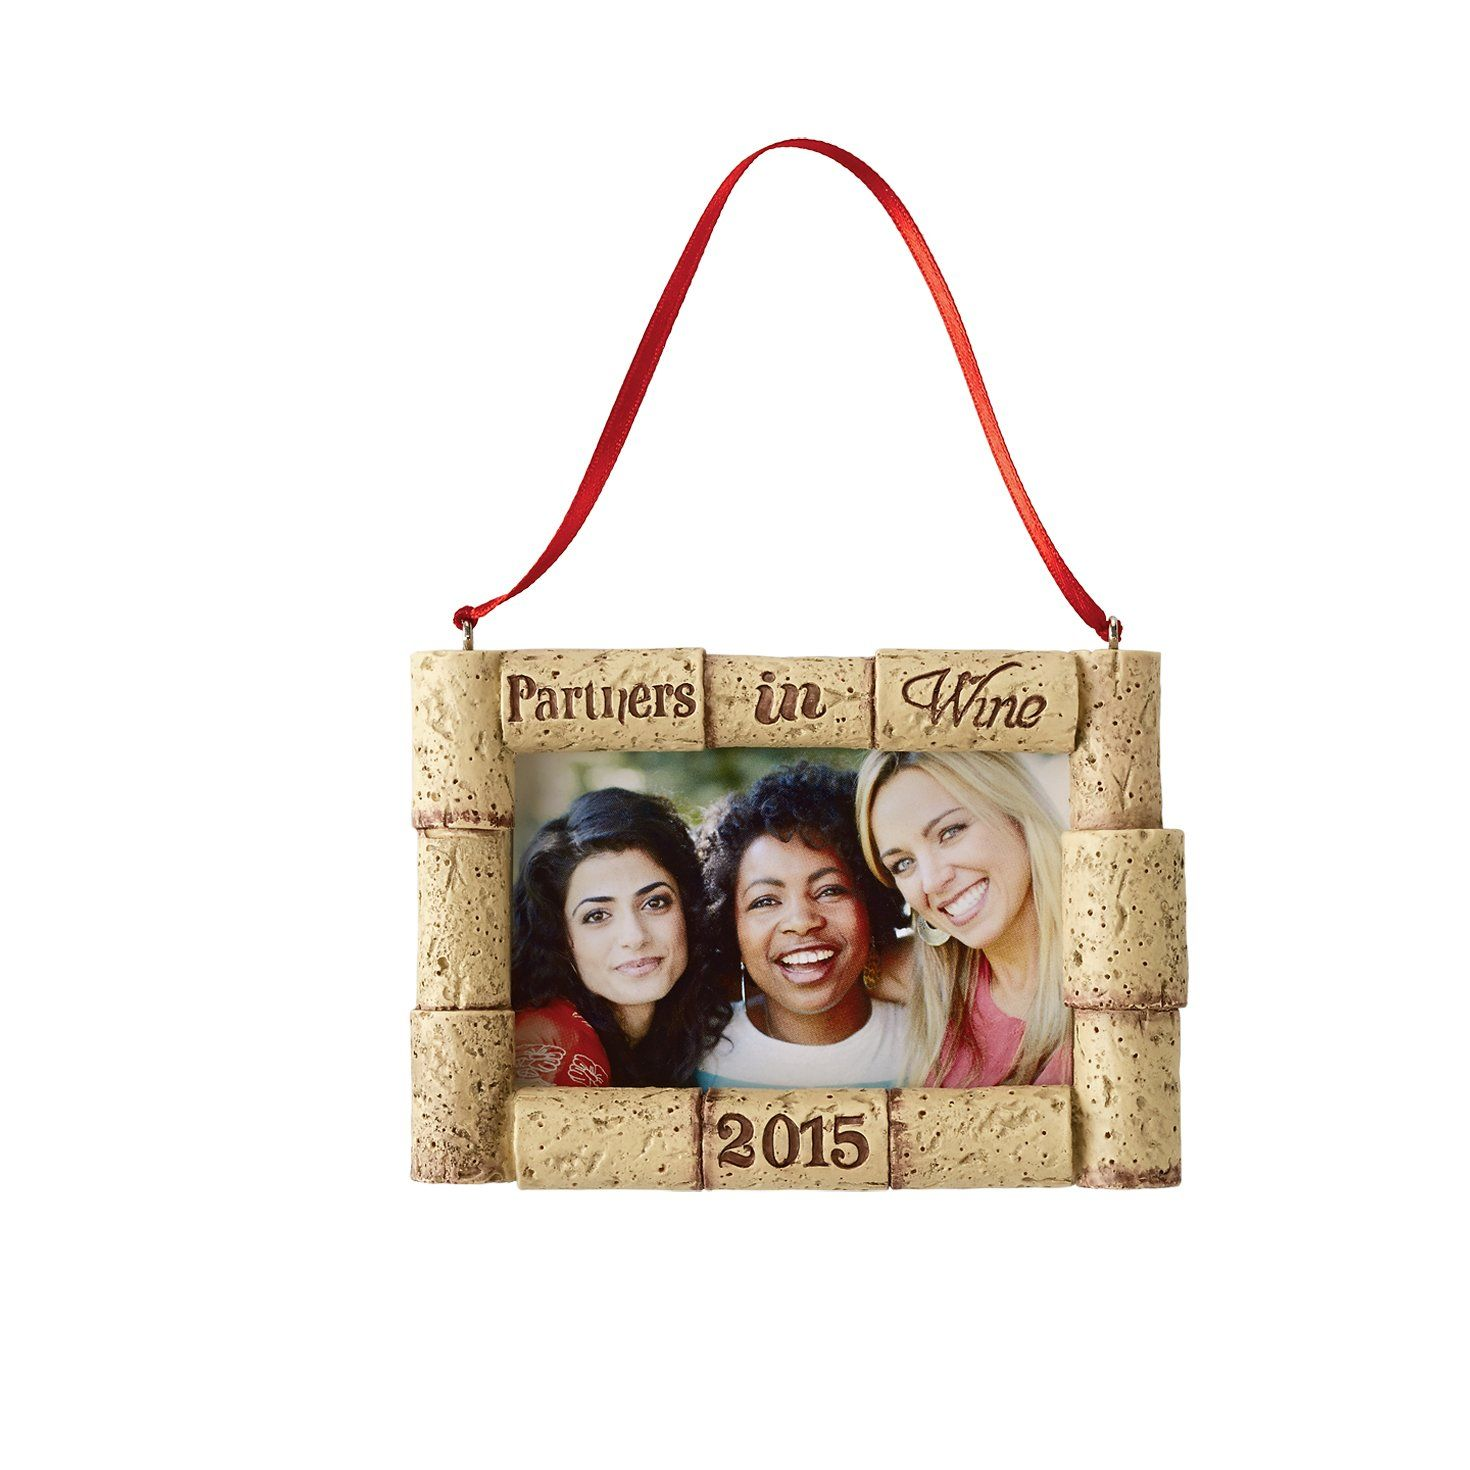 Hallmark Direct Imports 2015 Partners In Wine Photo Frame Ornament